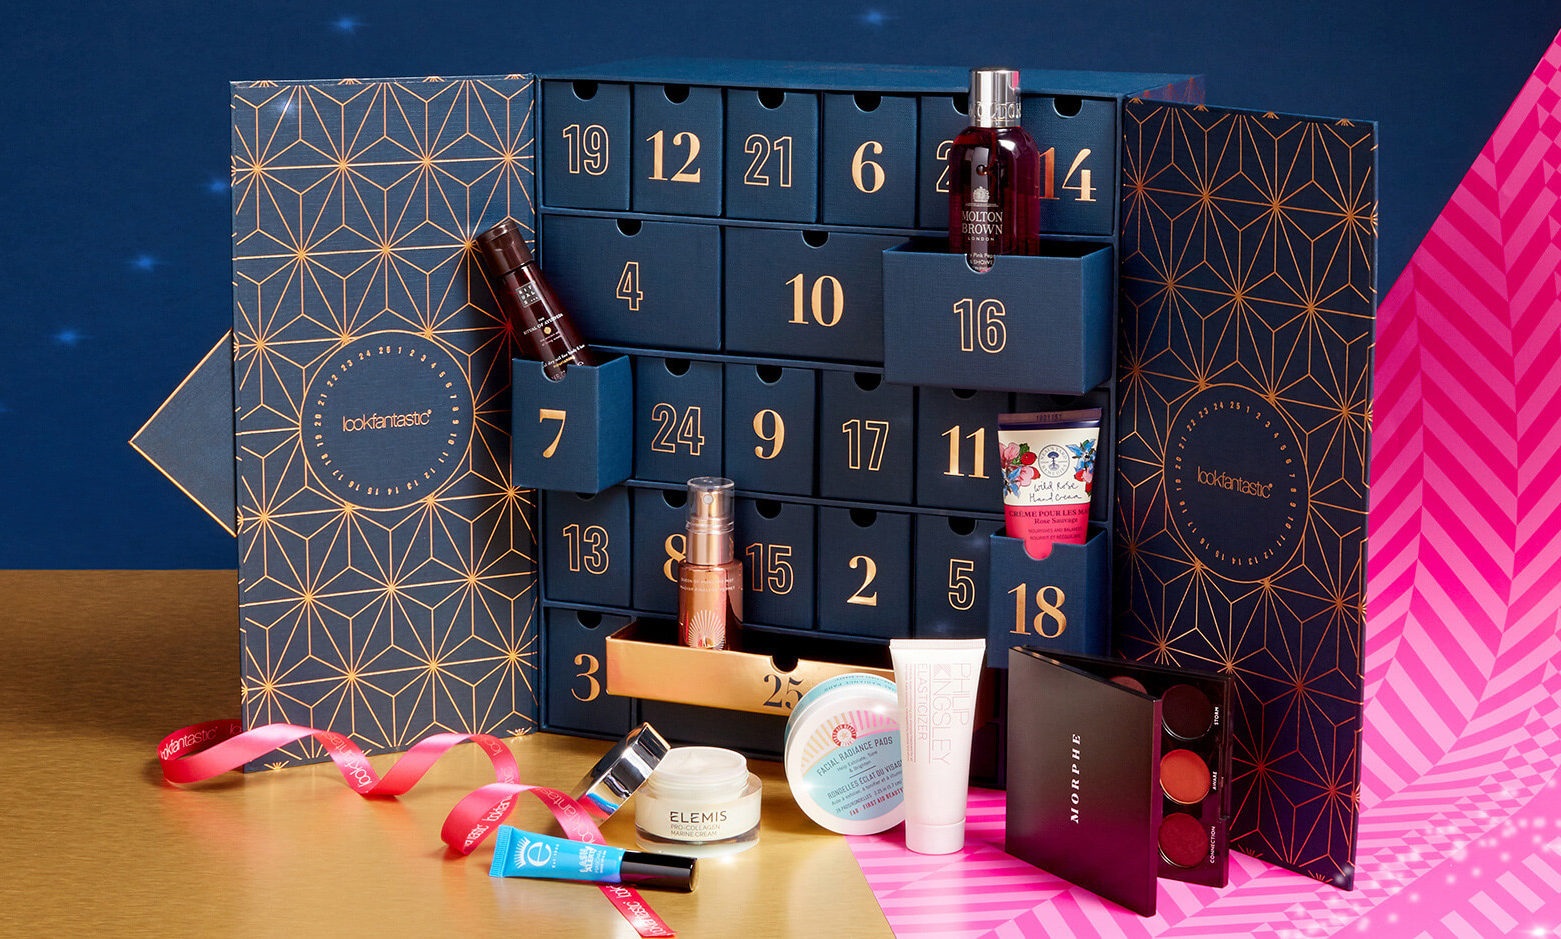 Lookfantastic - Calendario de Adviento de Lookfantastic 2019 - Beauty Advent Calendar 2019 Lookfantastic